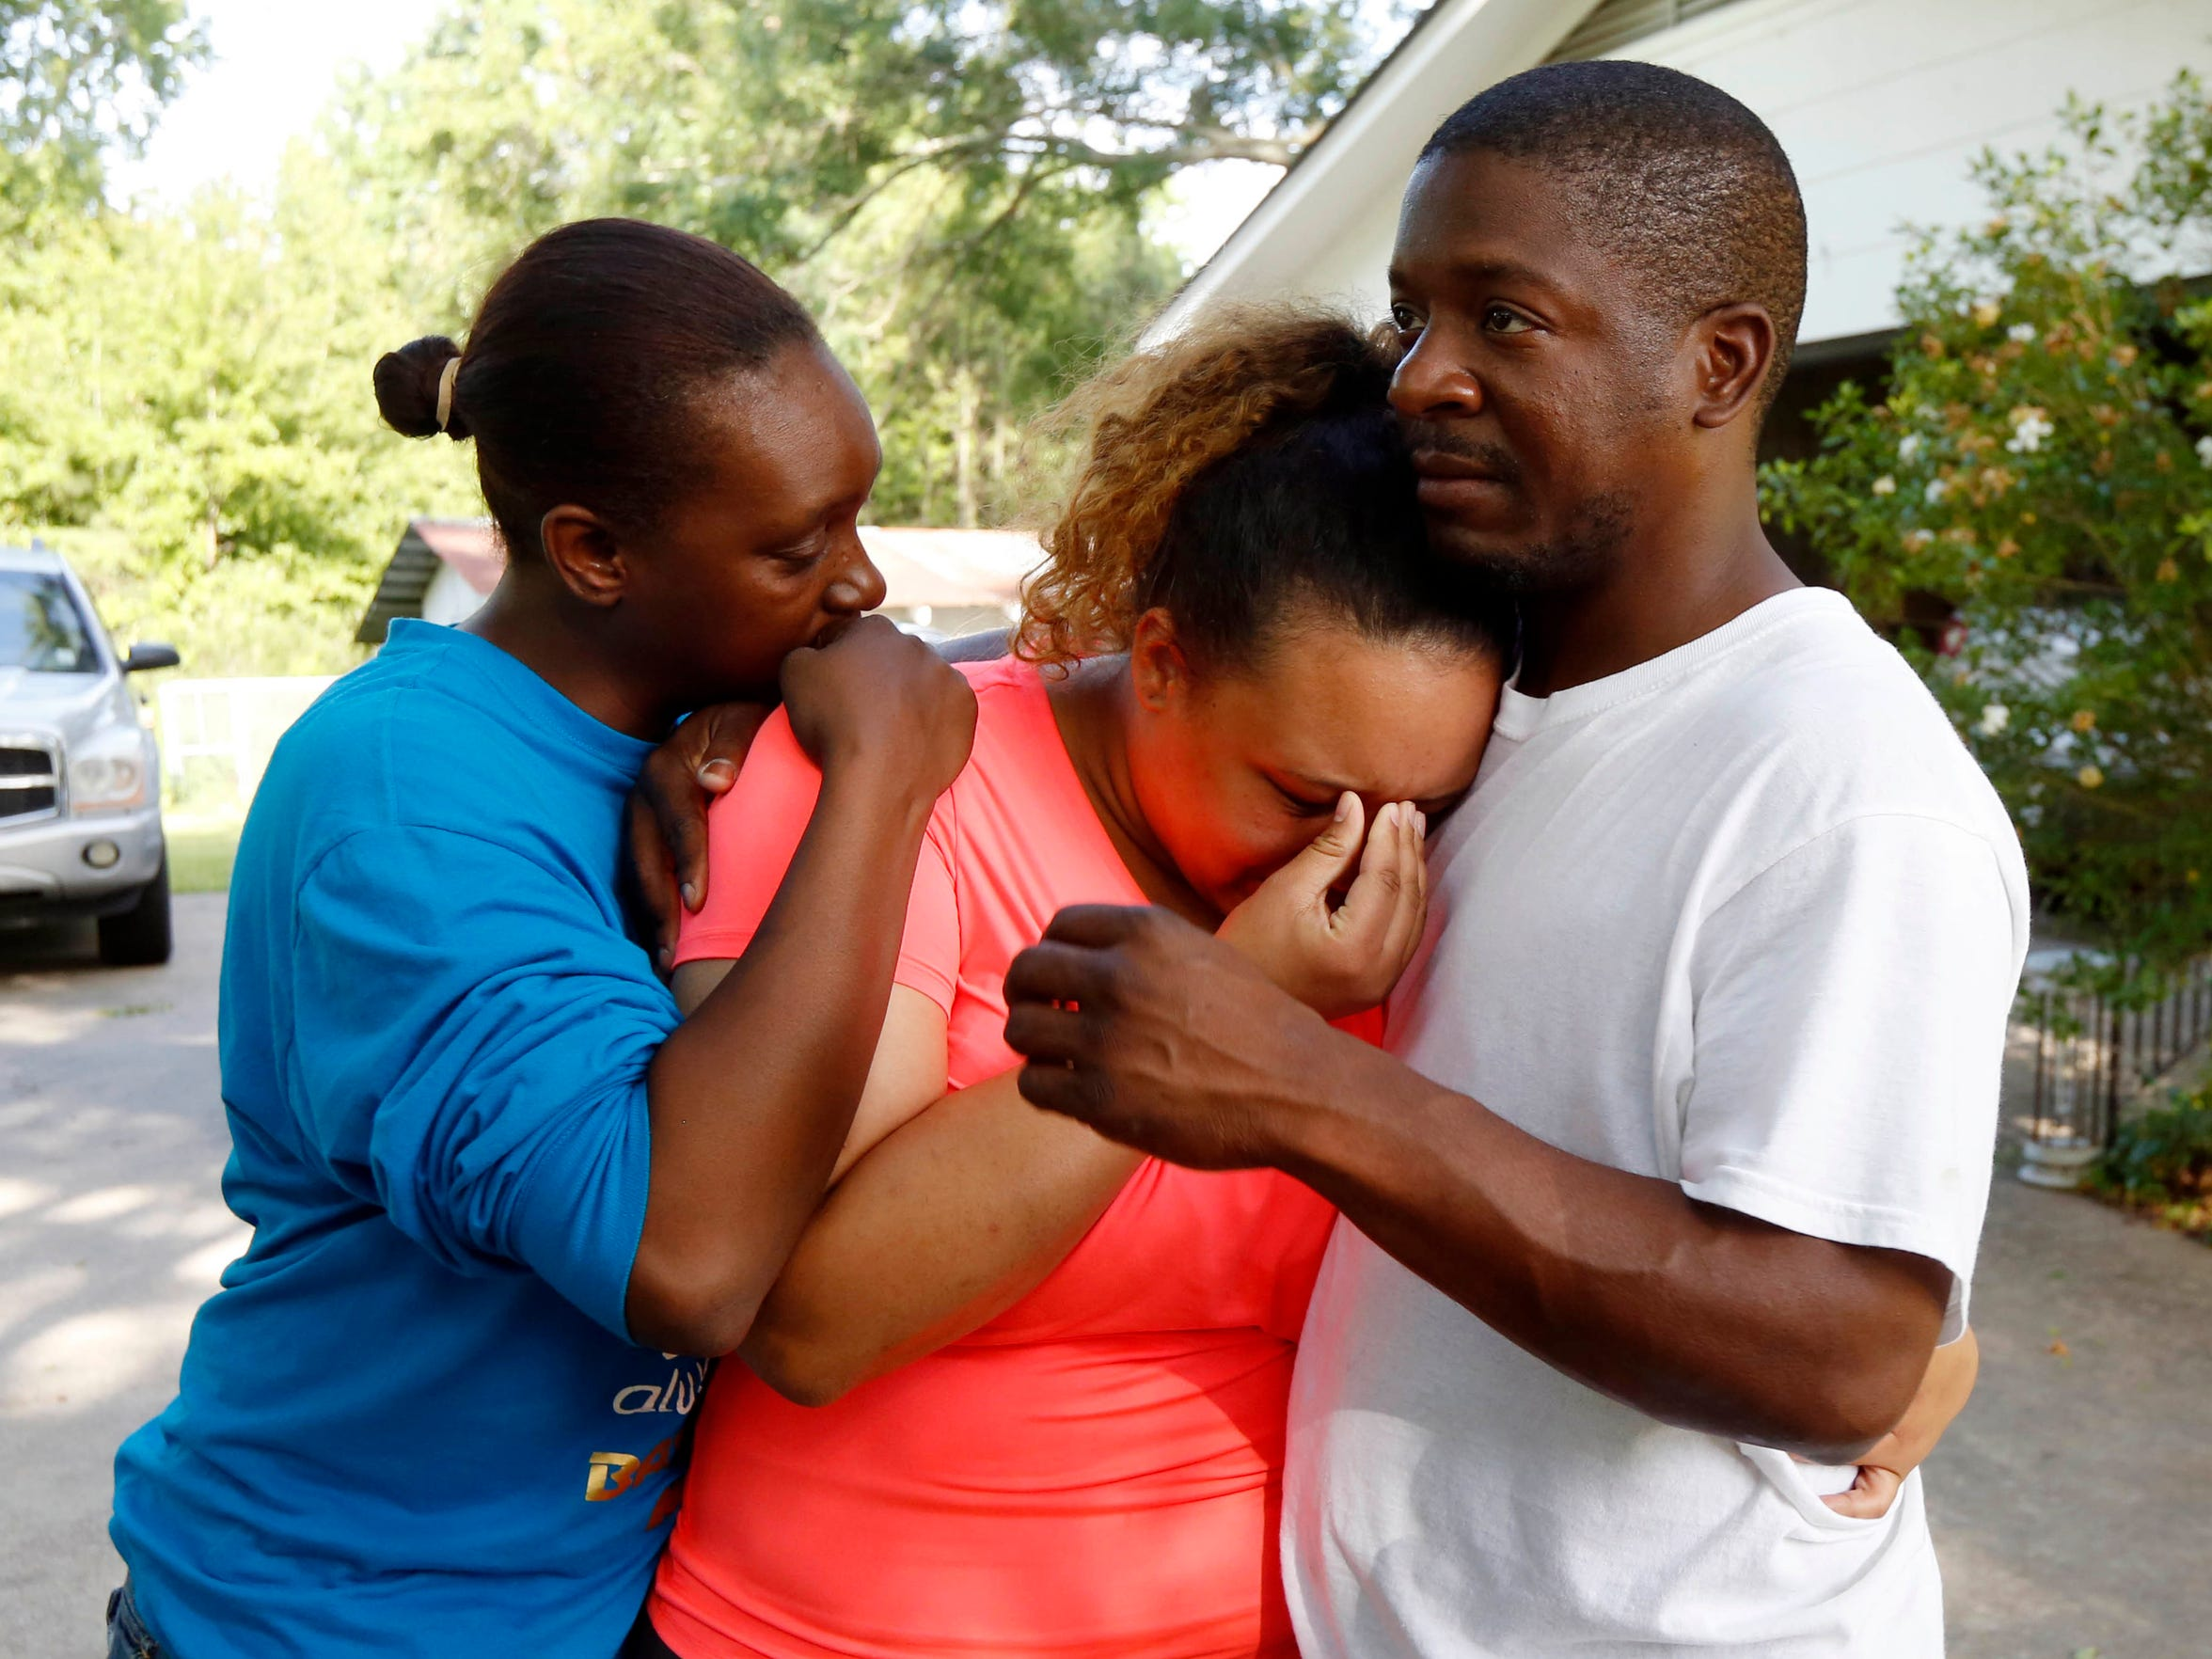 Christianna May-Kelly, center, is supported by family members as she cries after answering reporters questions outside her parents' home in Brookhaven, Miss., Sunday, May 28, 2017. May-Kelly said her parents and mother were among the people gunned down during a shooting in rural Mississippi Saturday night.